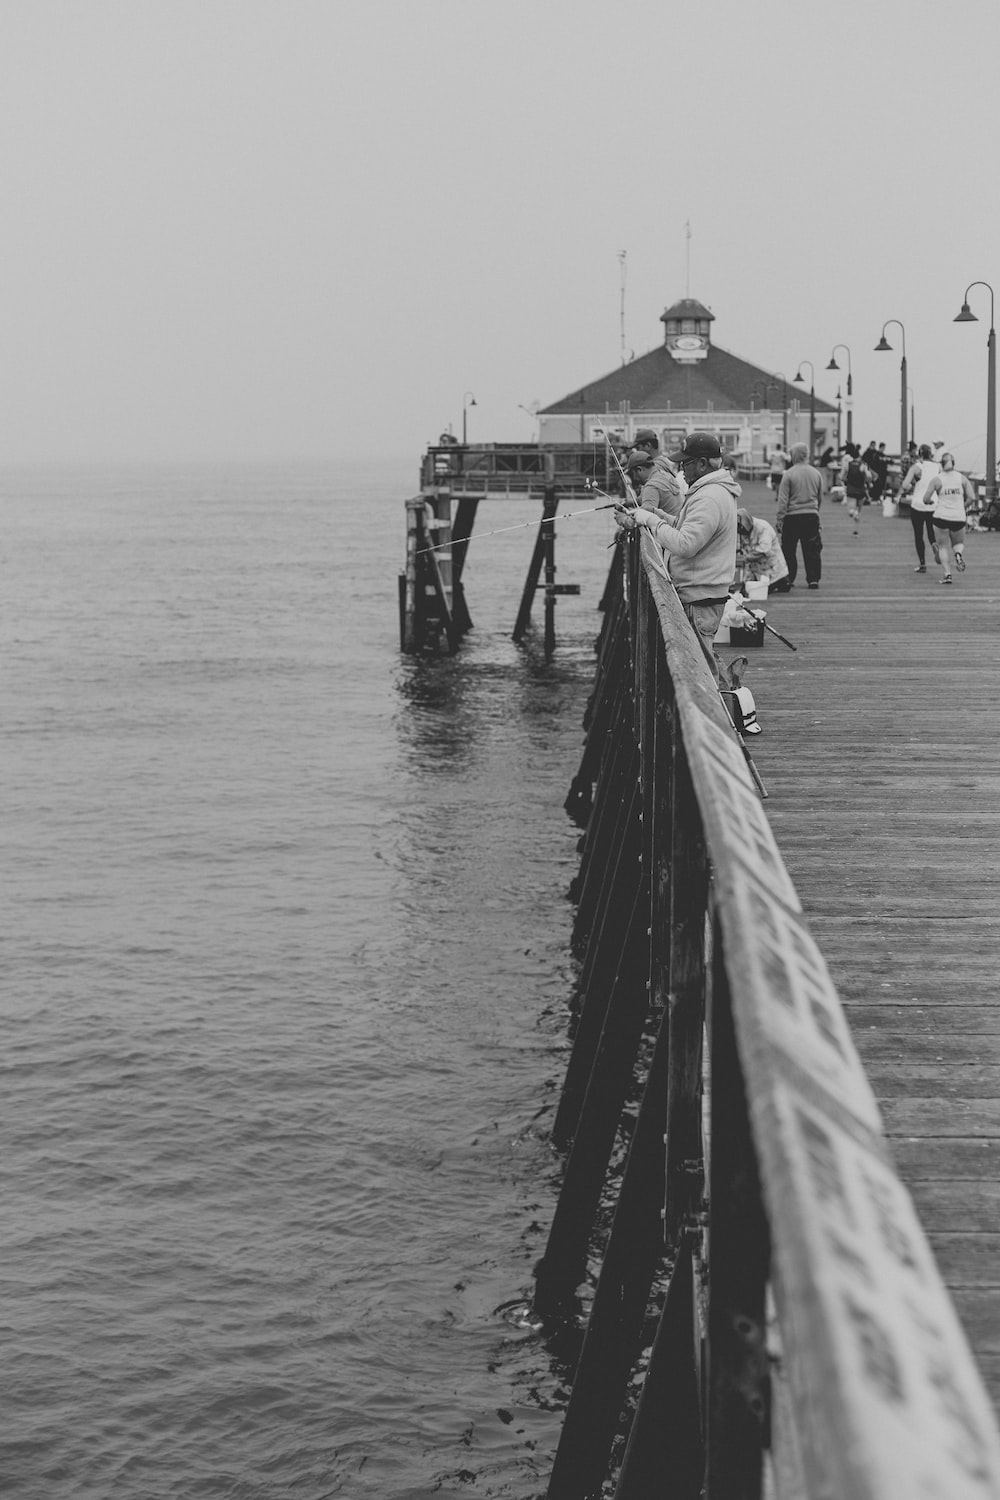 Black And White Photograph Of People Fishing On A Pier At Imperial Beach